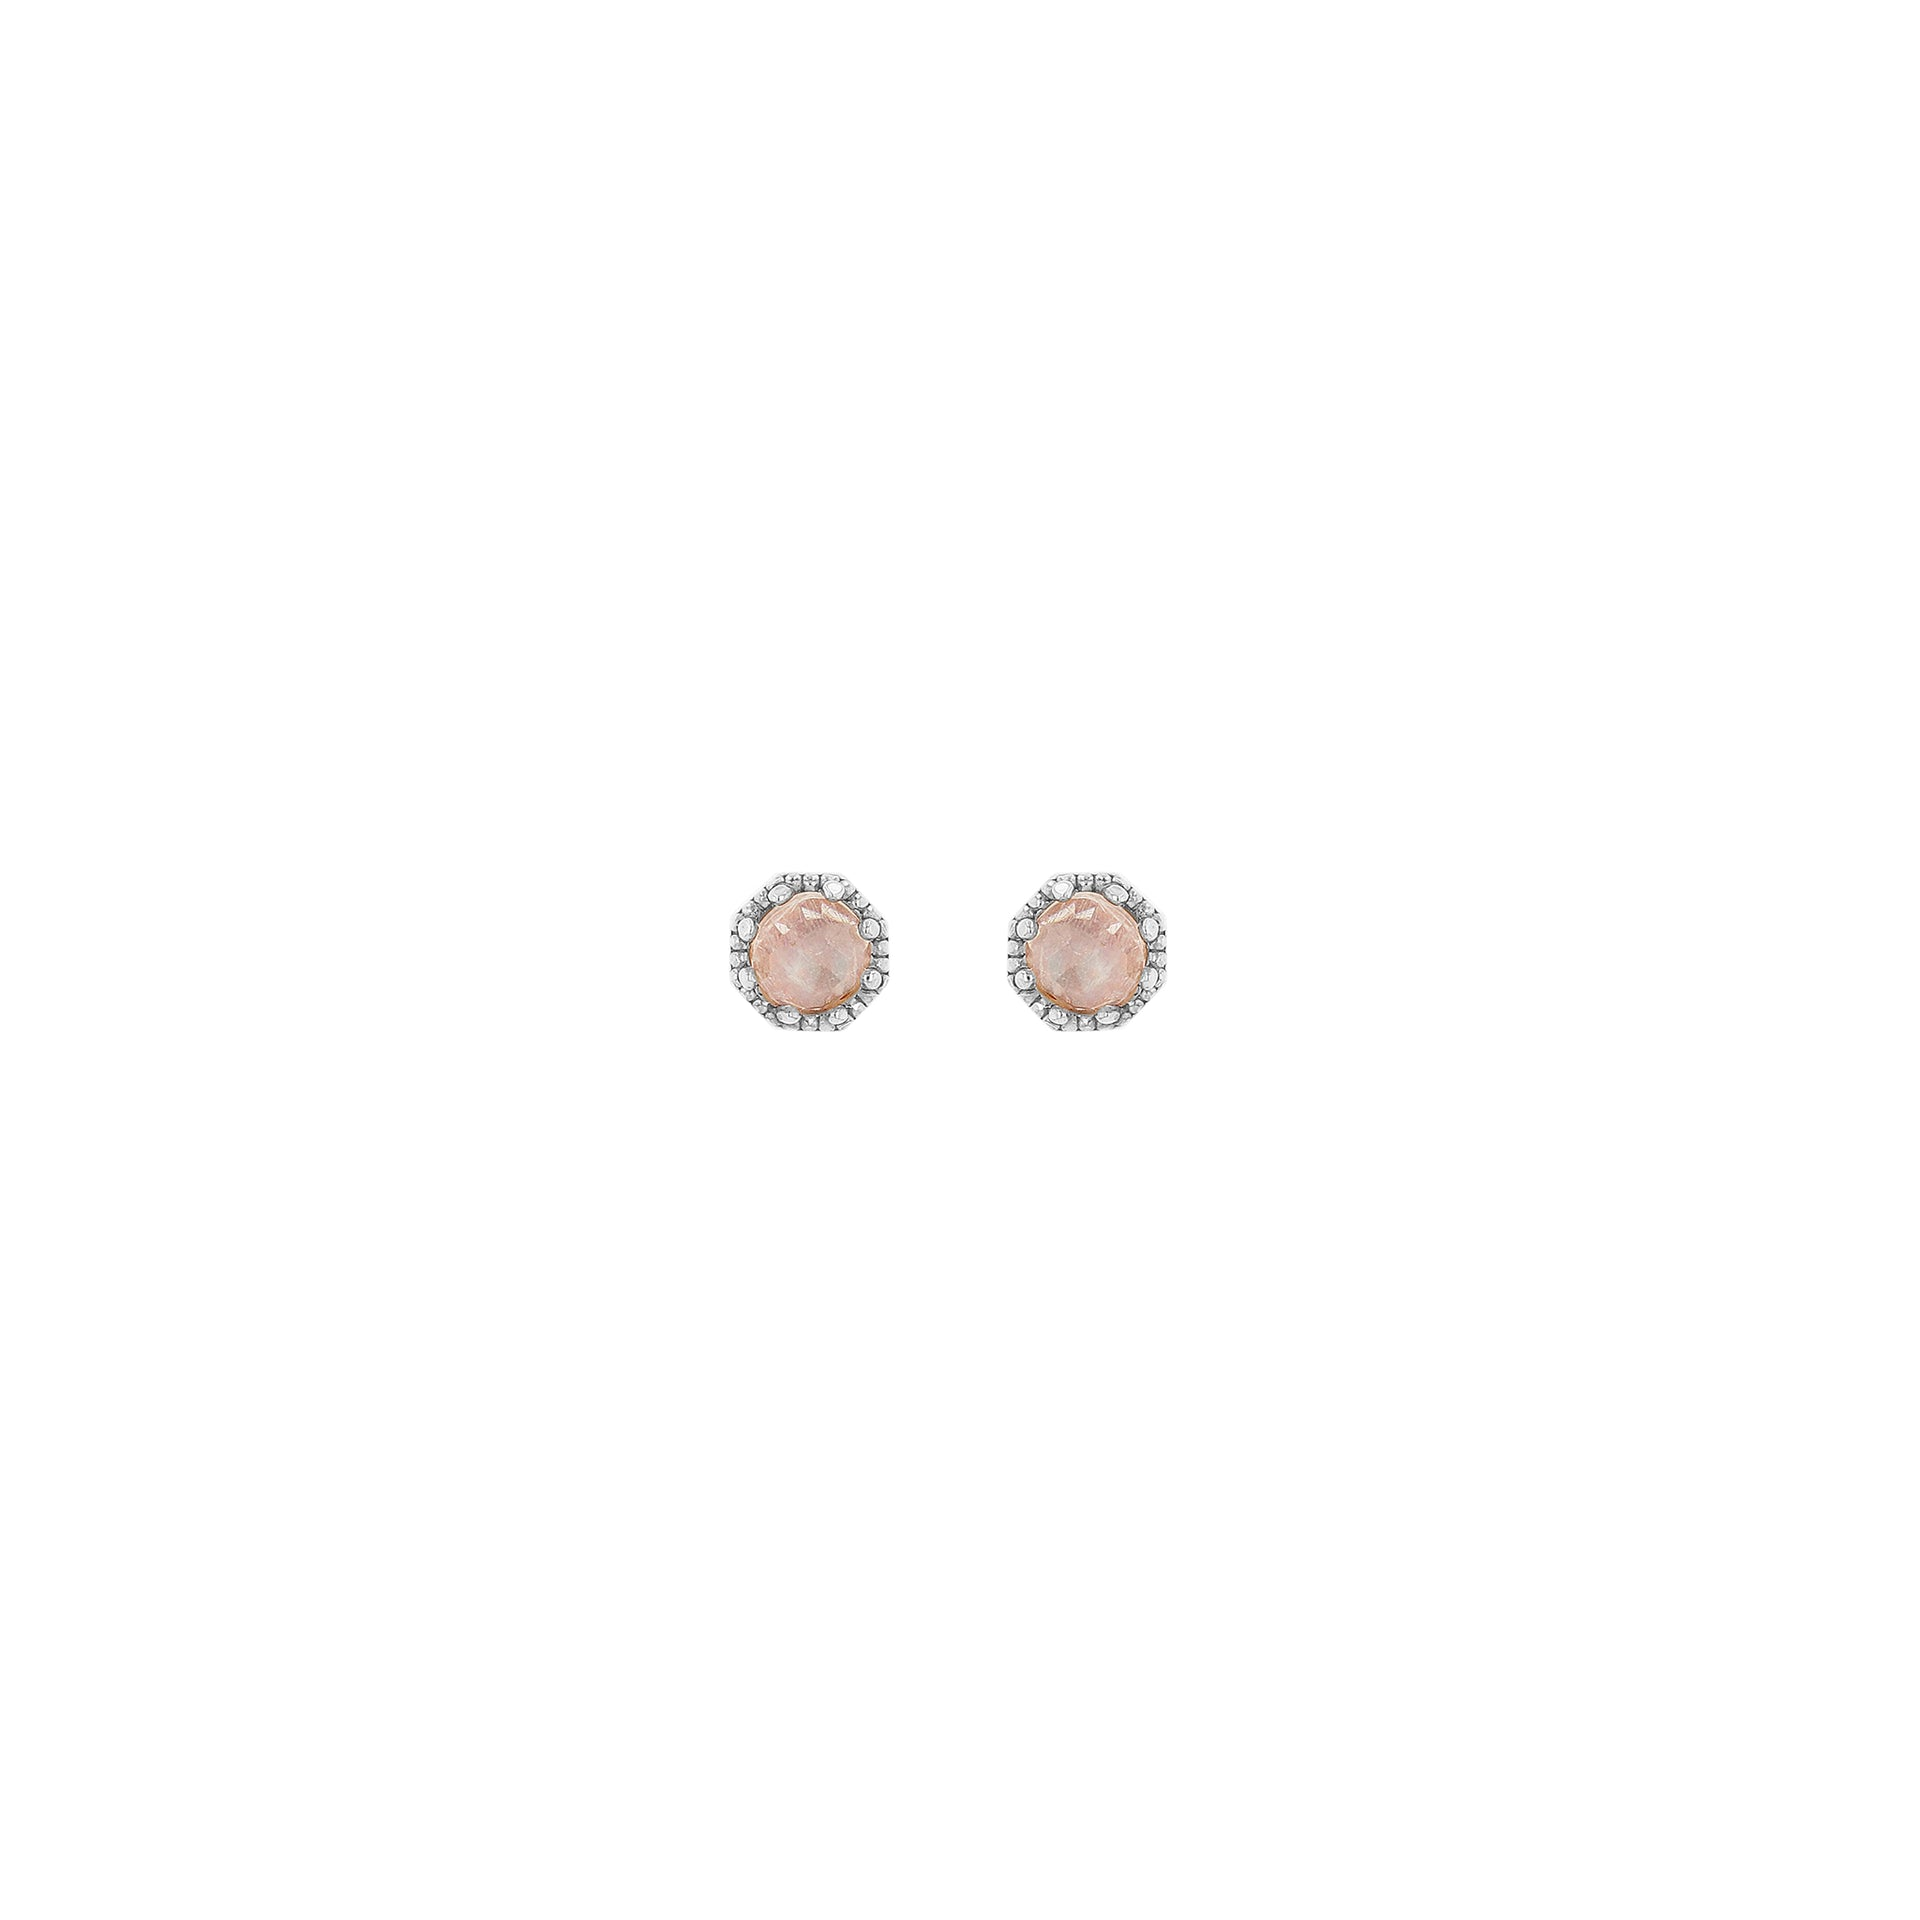 Petite Crown Bezel Moonstone Earrings - RTS